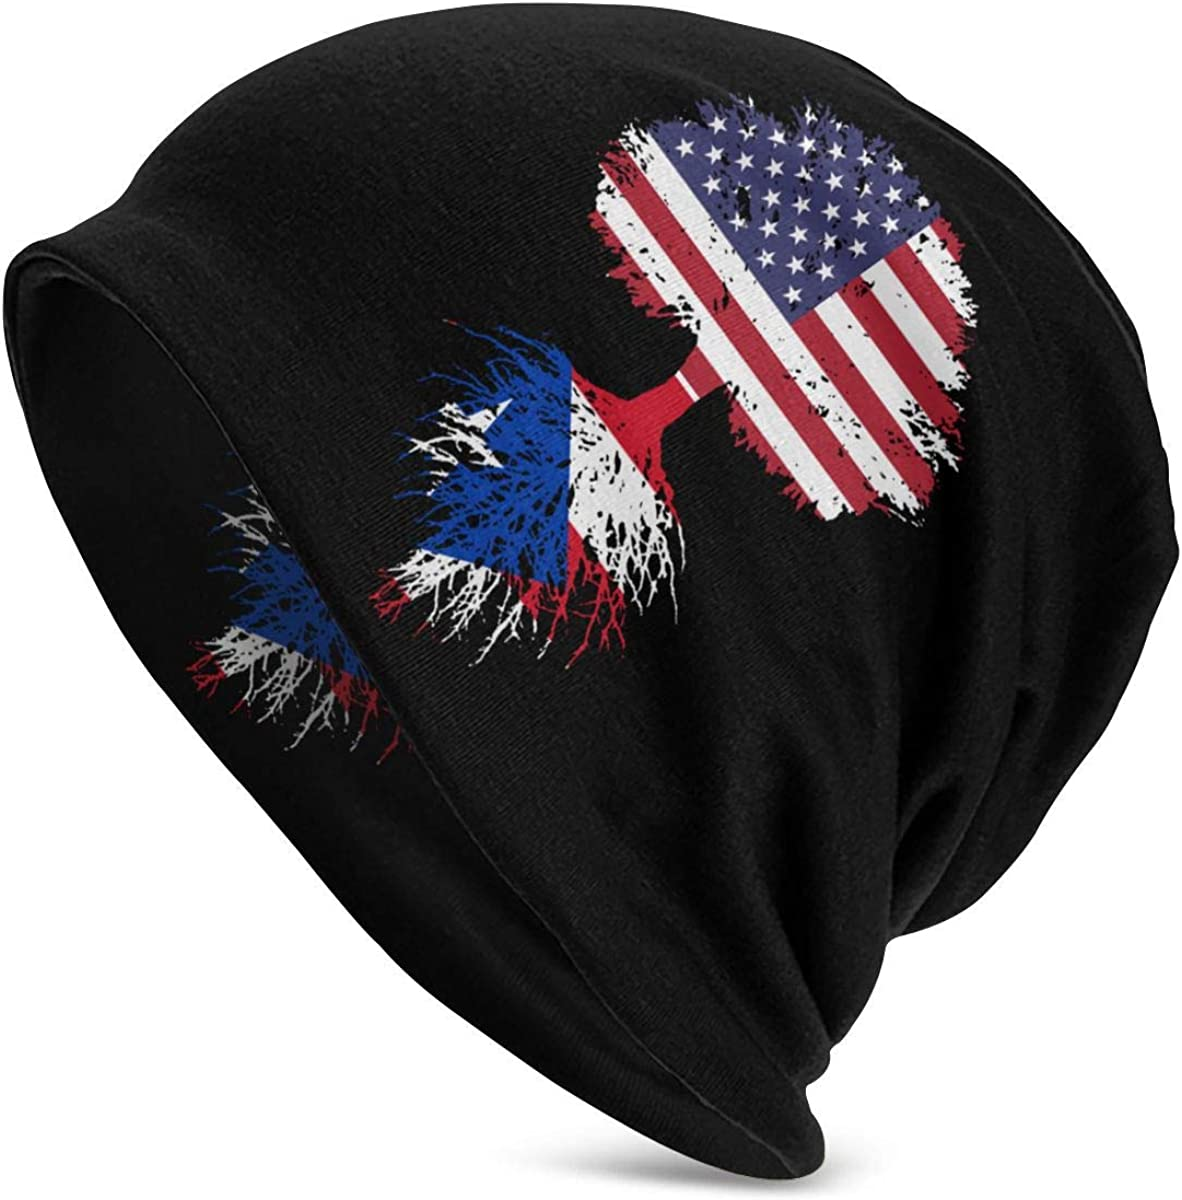 Thin Stretchy /& Soft Winter Cap Puerto Rico American Flag Tree of Life Women Men Solid Color Beanie Hat